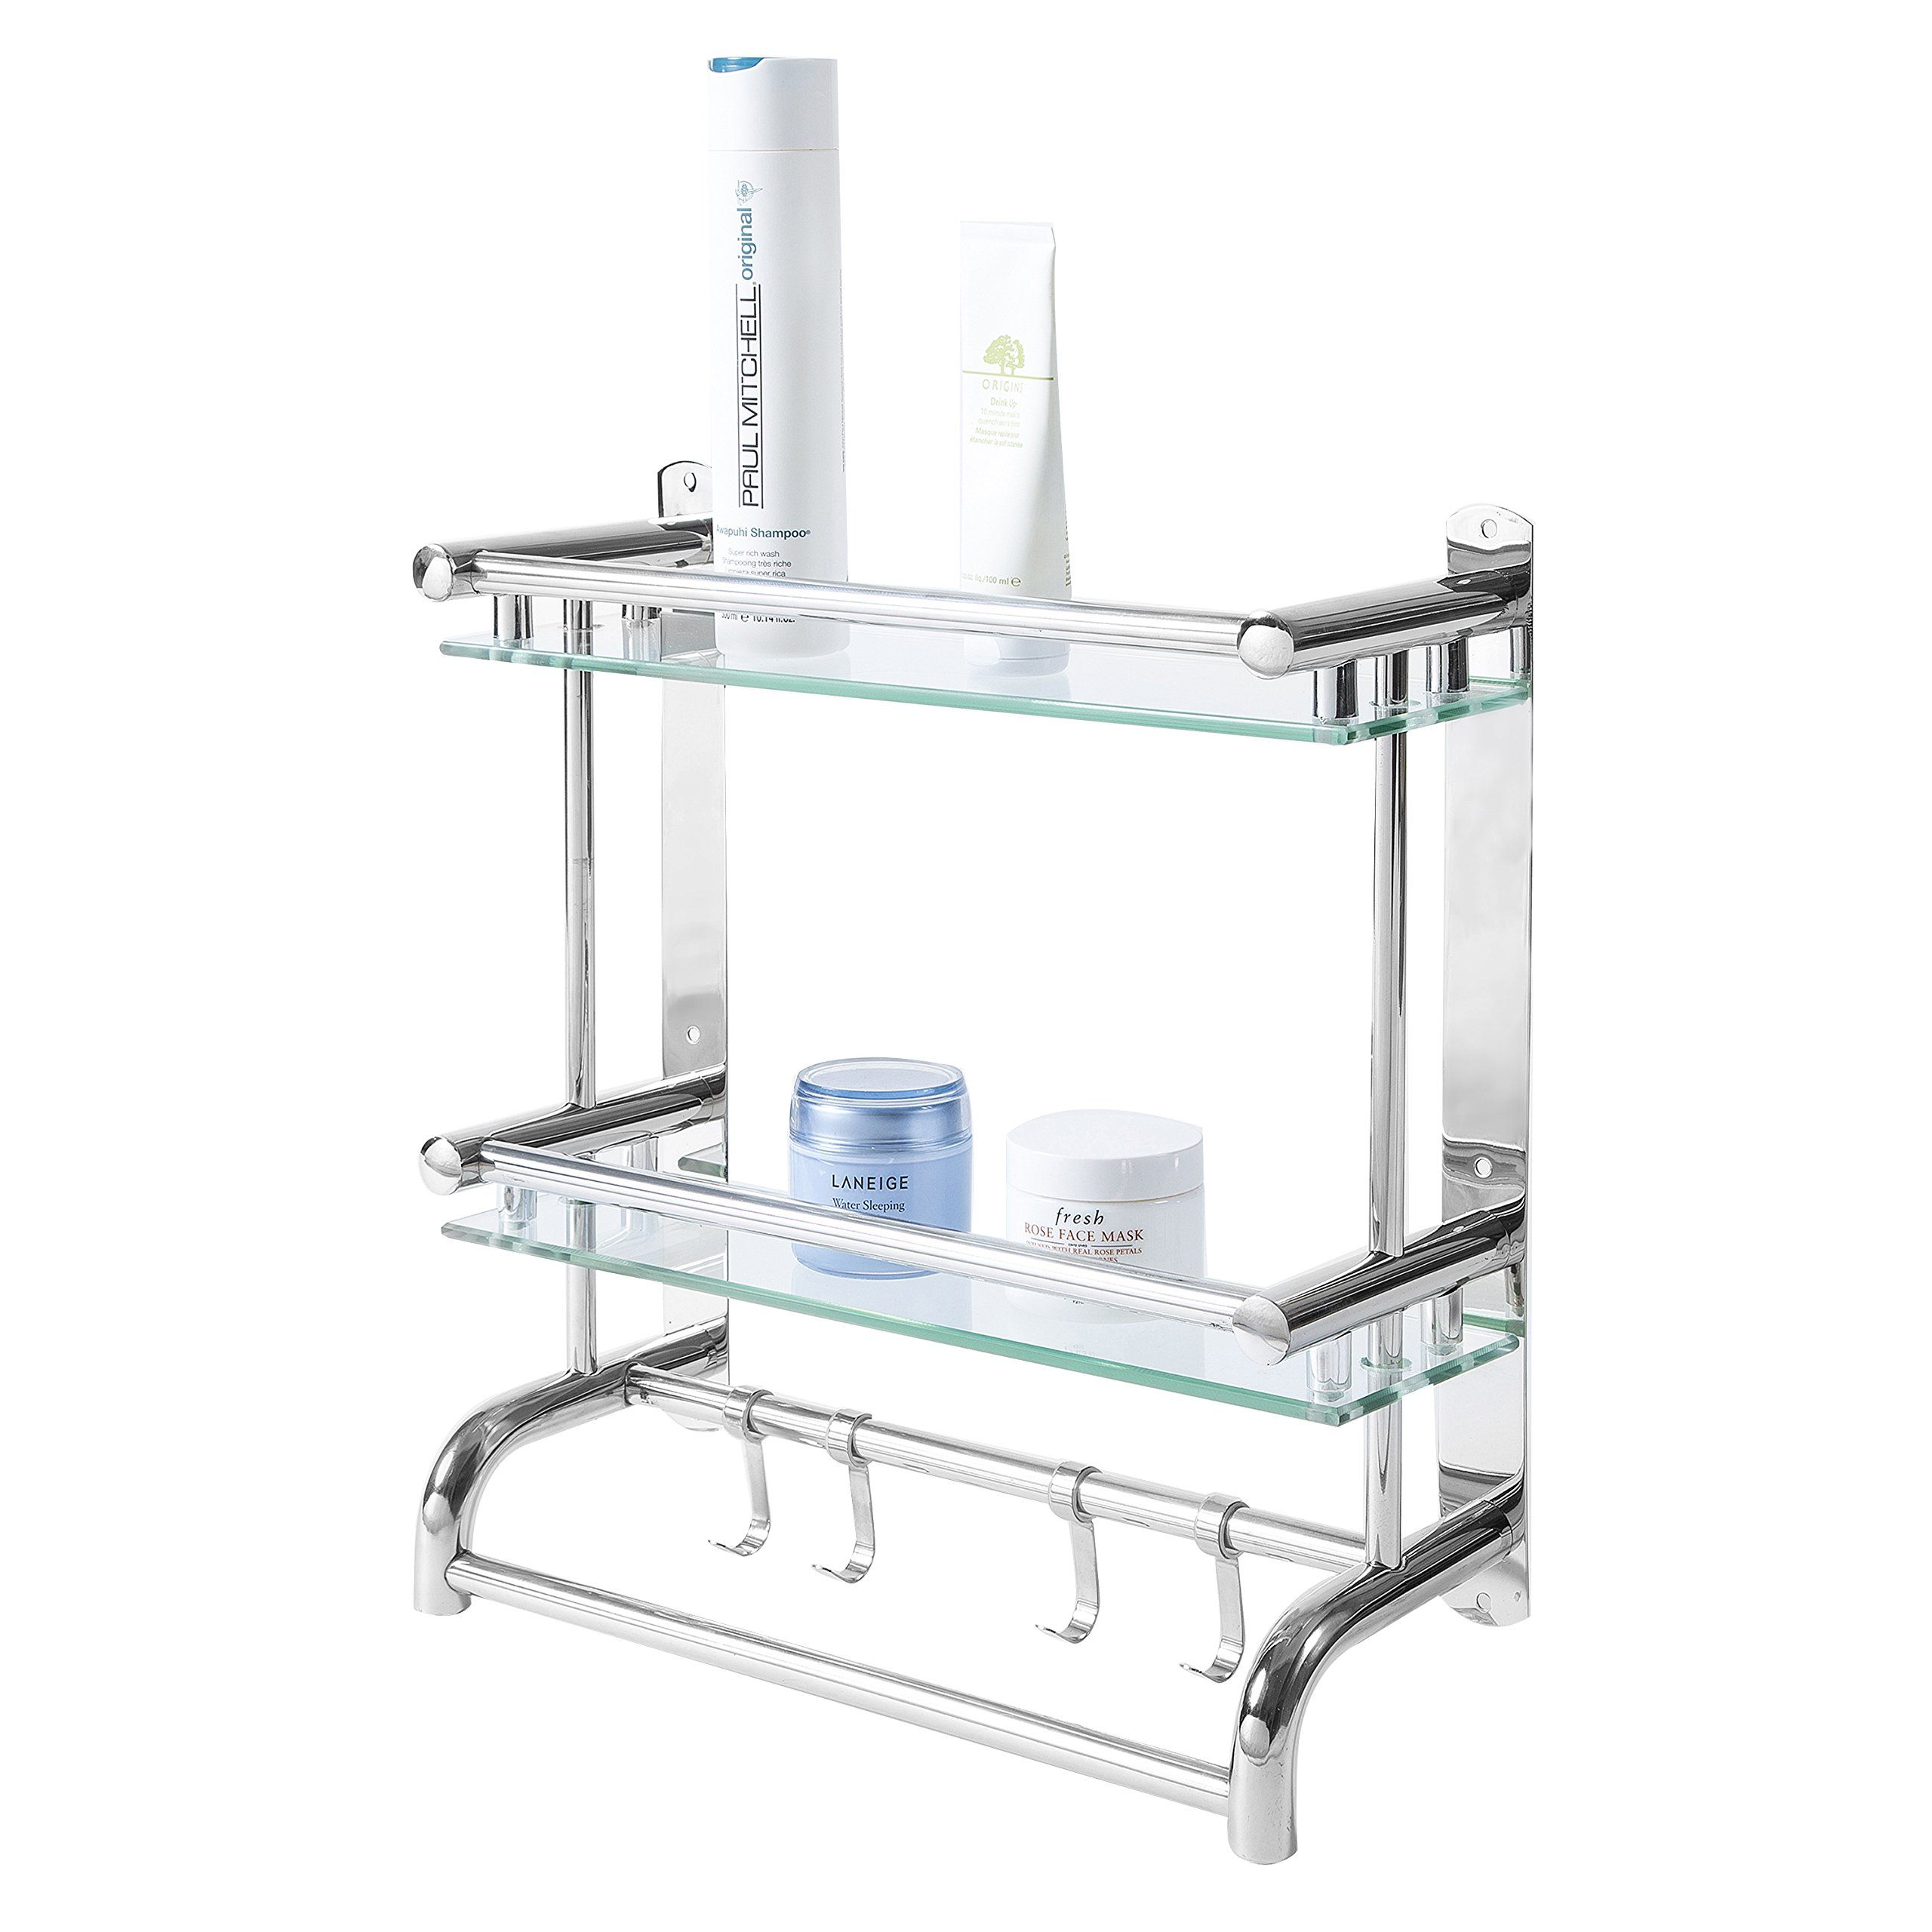 Mygift Wall Mounted Stainless Steel Bathroom Shelf Rack 2 Tier Glass Shelves And 2 Towel B In 2020 Stainless Steel Bathroom Bathroom Shelf Decor Bathroom Wall Shelves